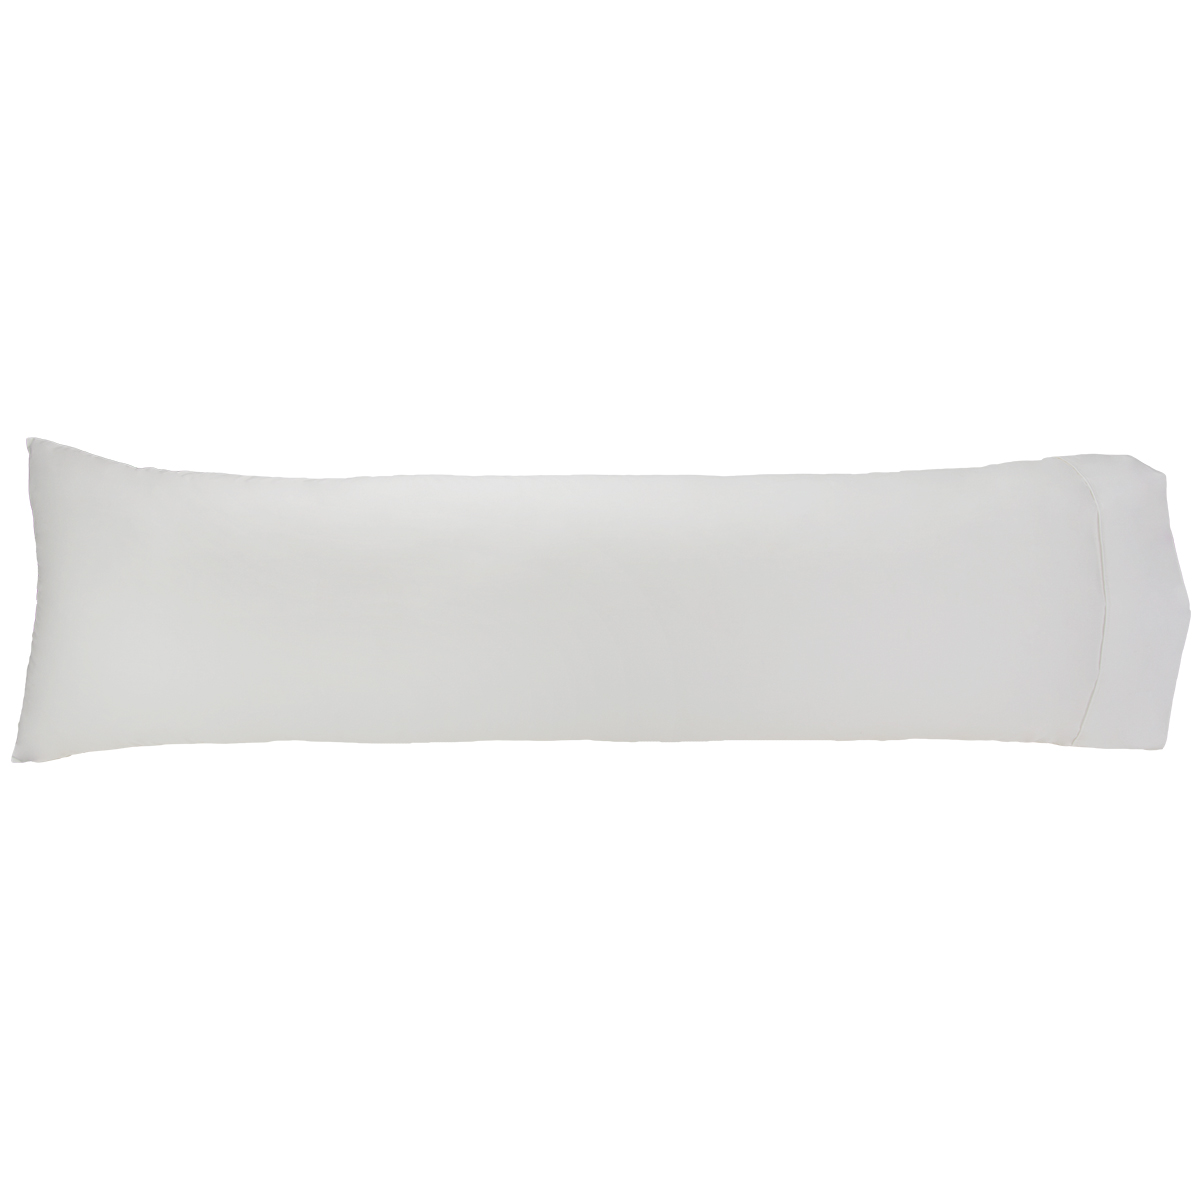 Easyrest Everyday Body Pillow 150 cm L